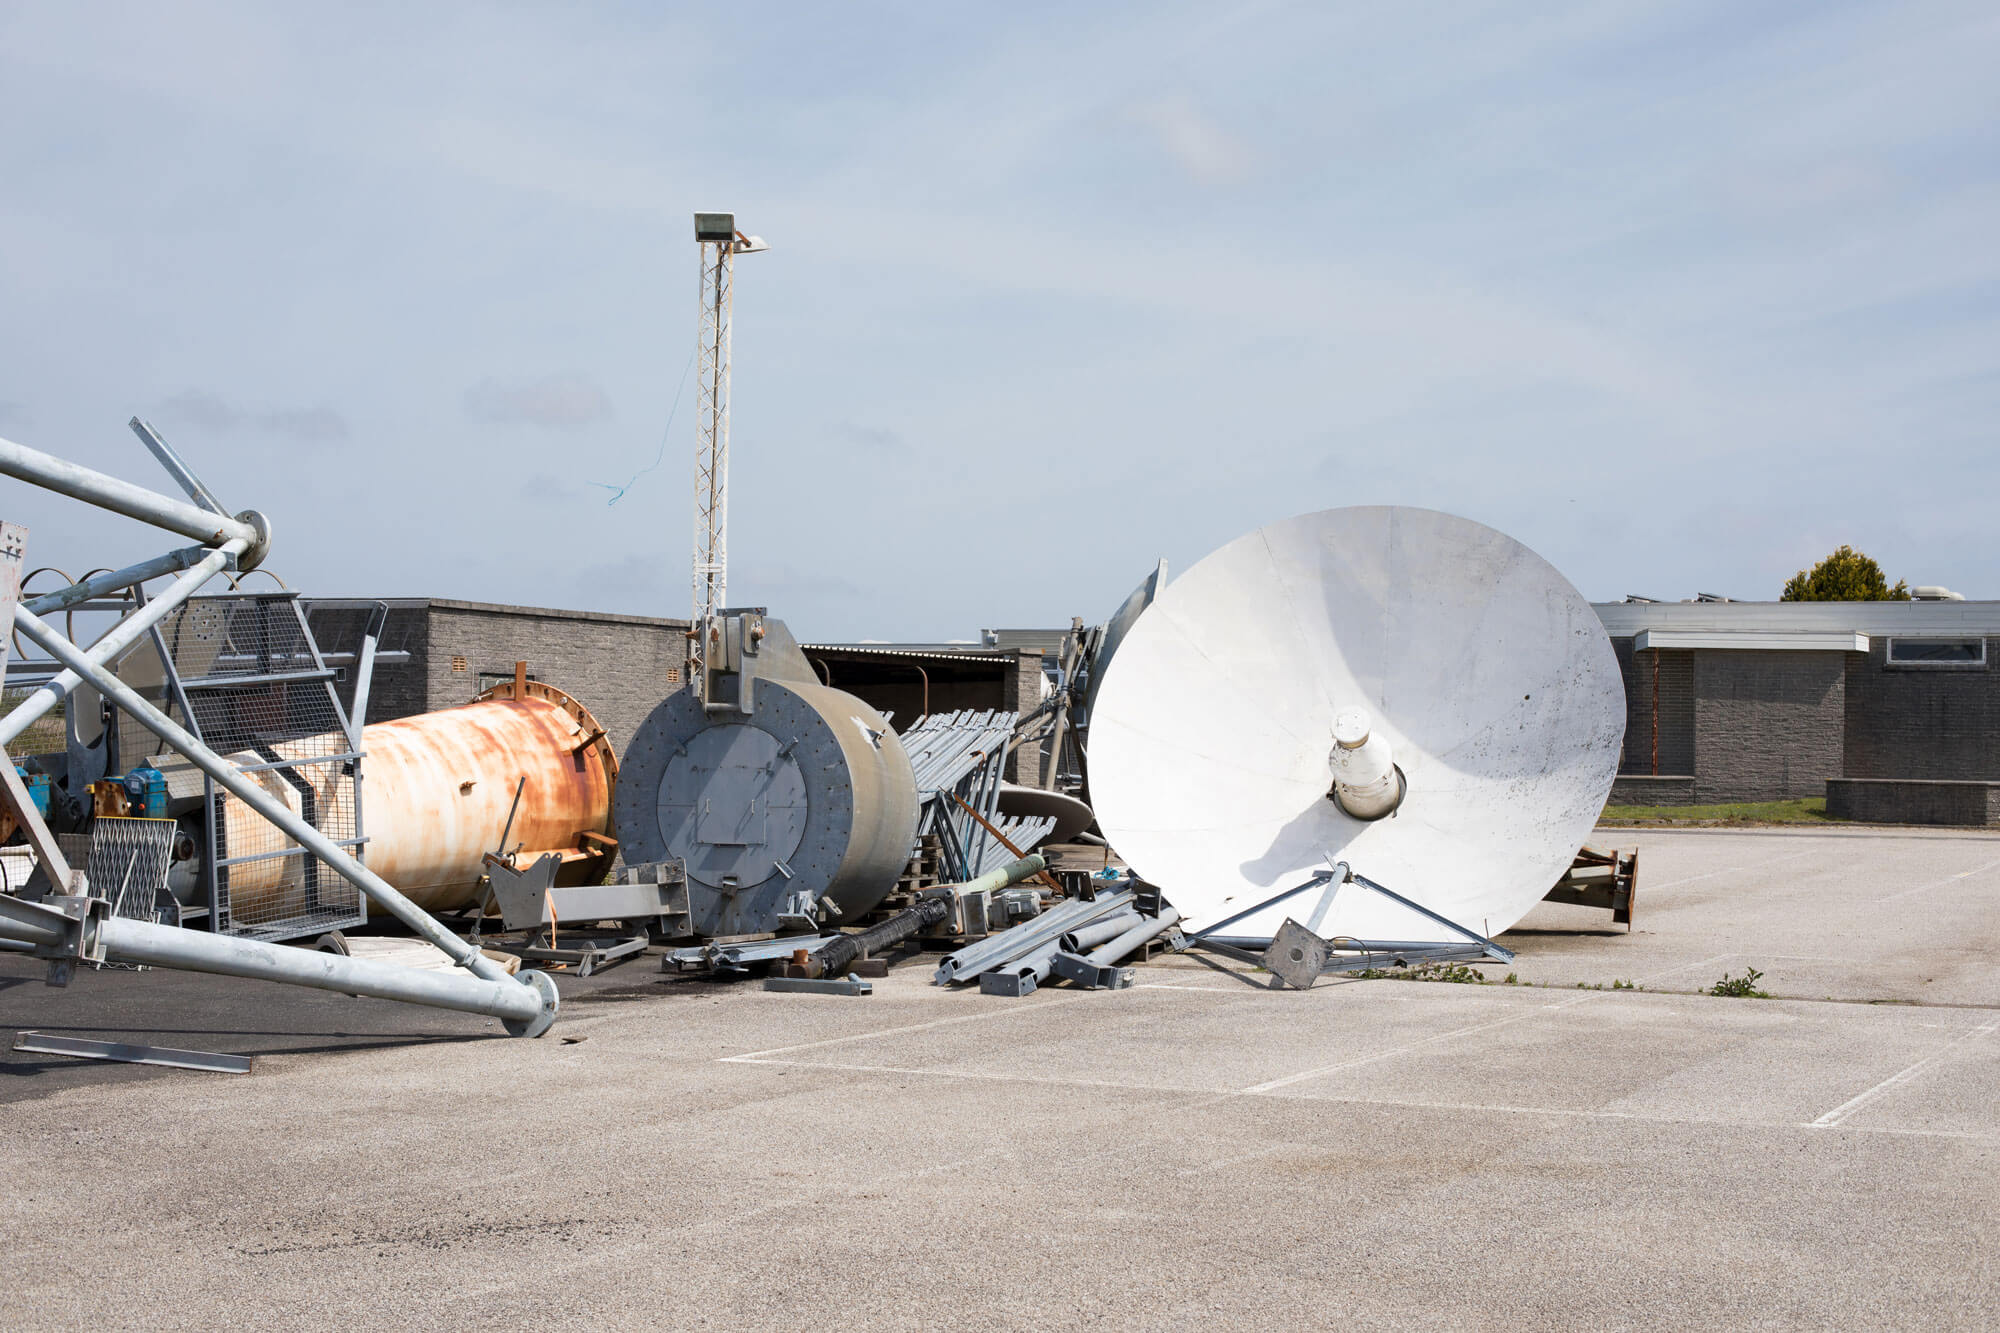 abandoned satellites ready for a scrap pile